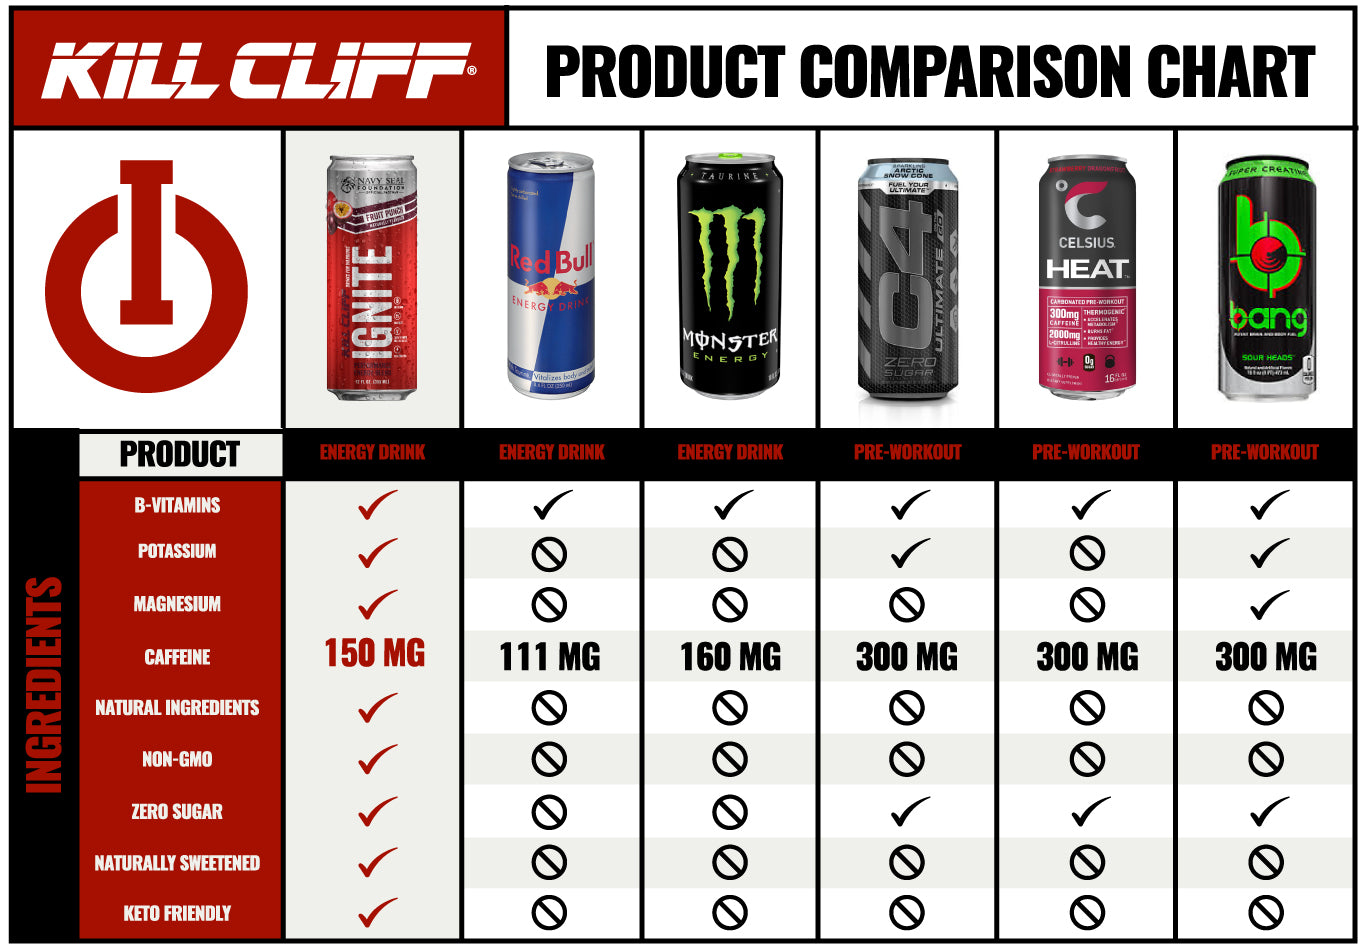 Kill Cliff Ignite Fruit Punch Comparison